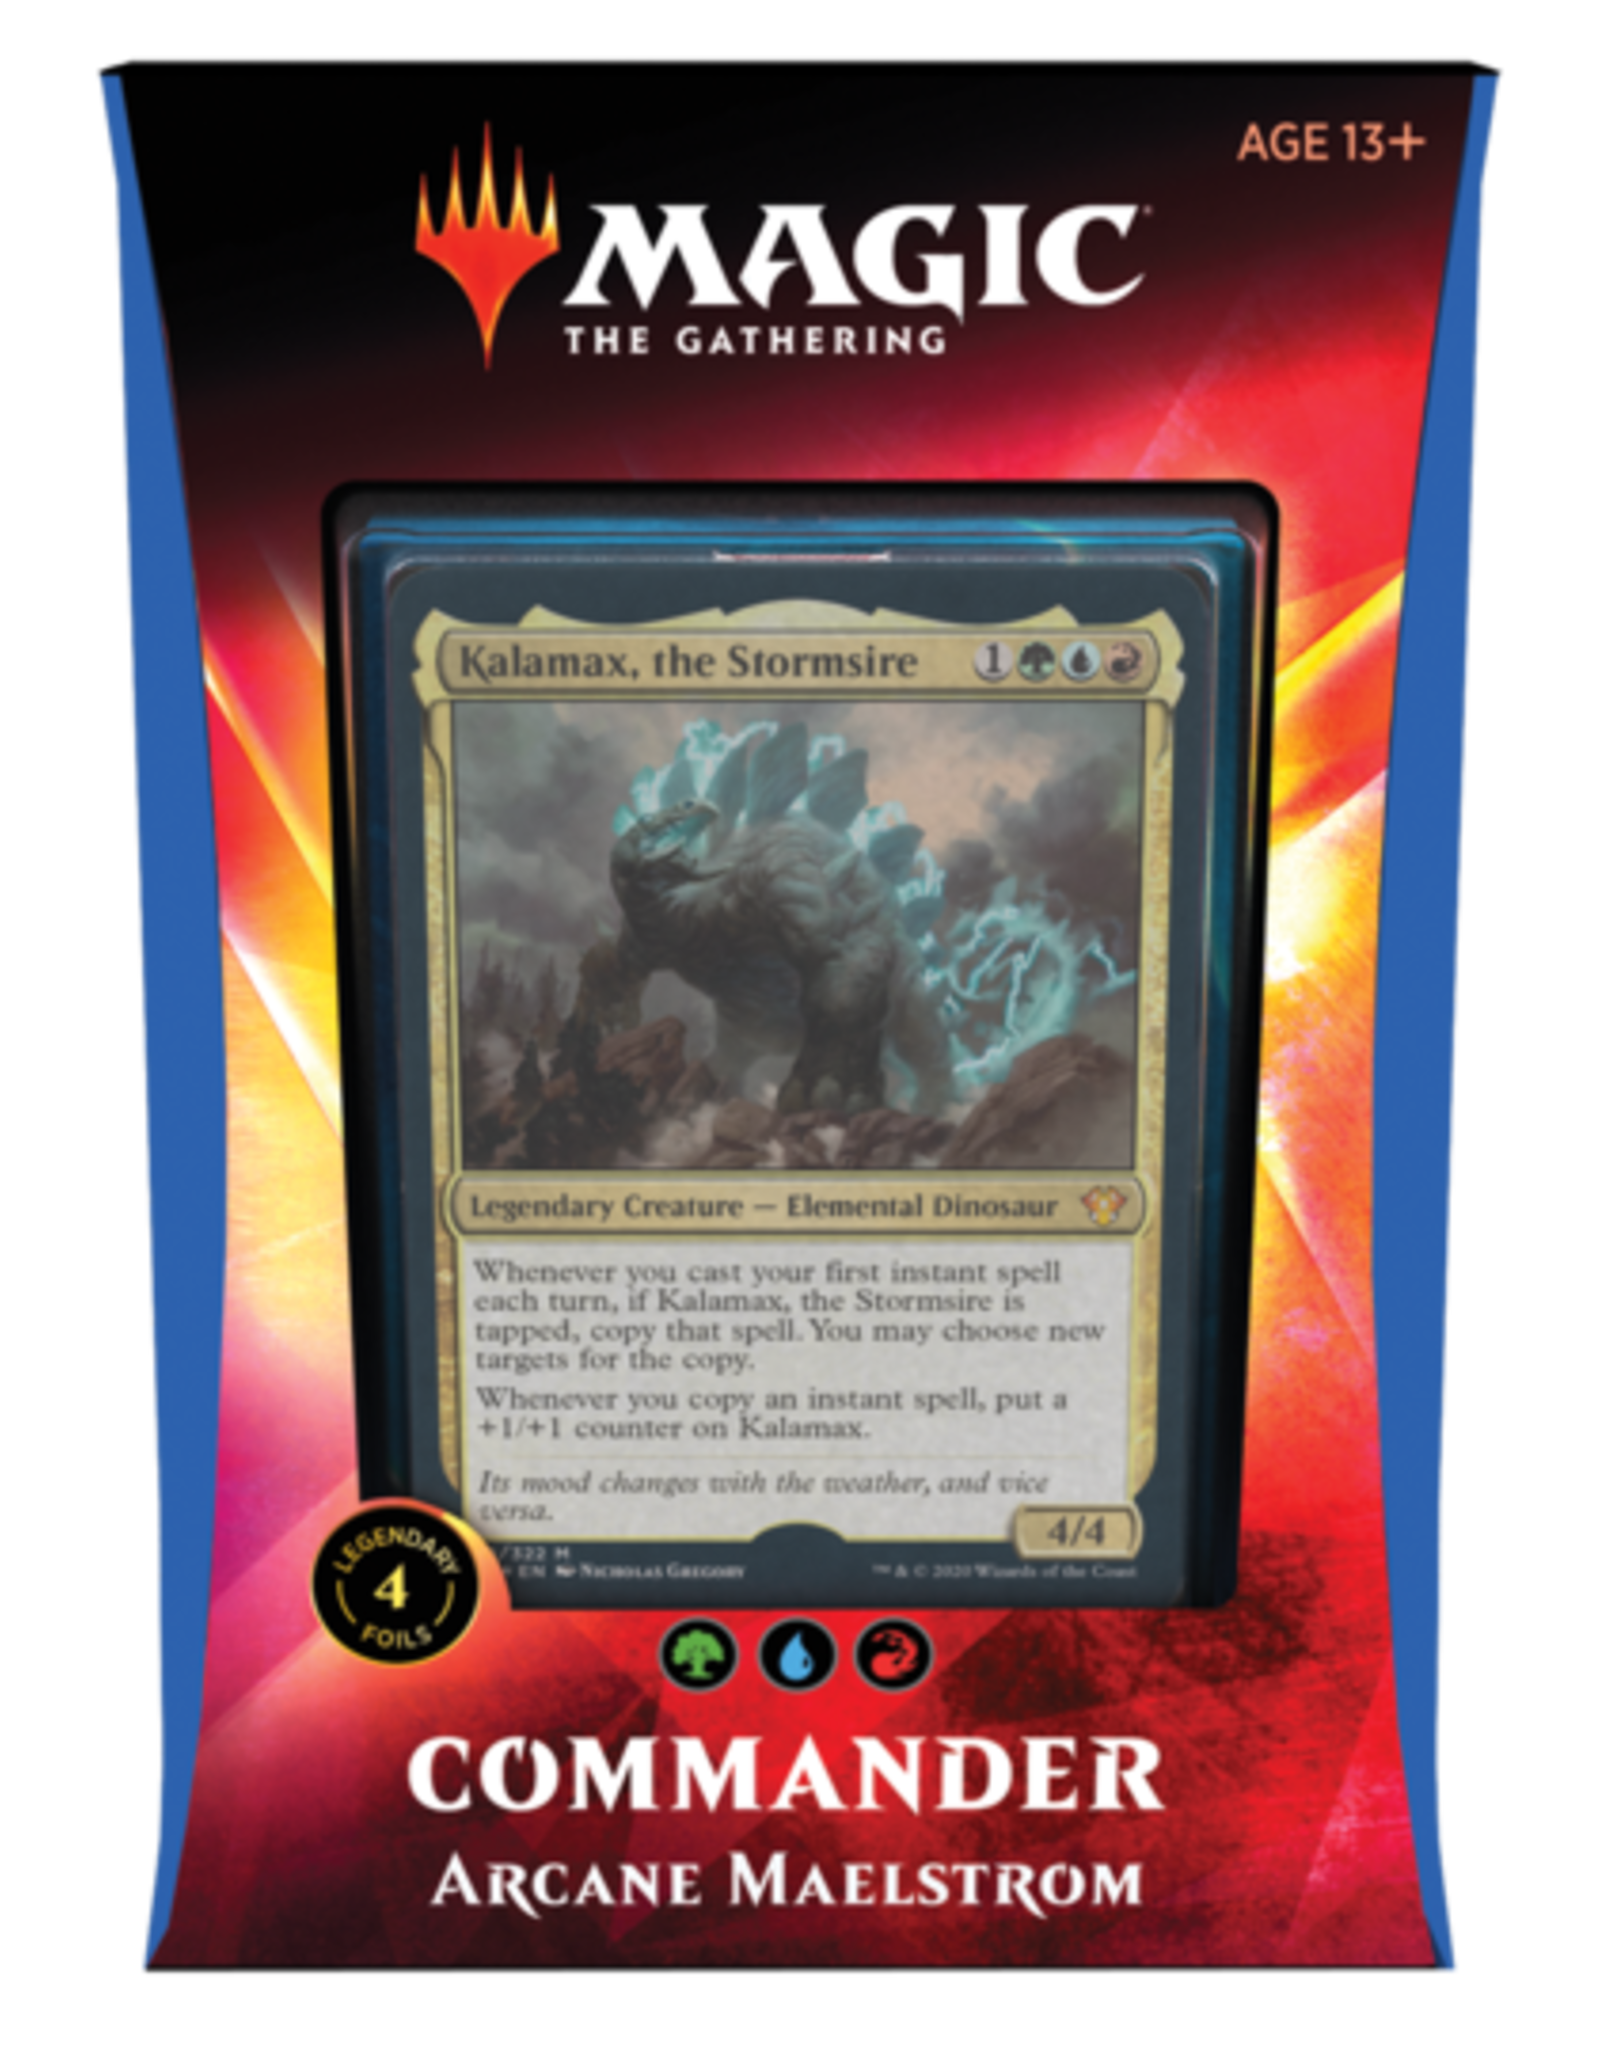 WIZARDS OF THE COAST MTG TCG IKORIA COMMANDER DECK ARCANE MAELSTROM